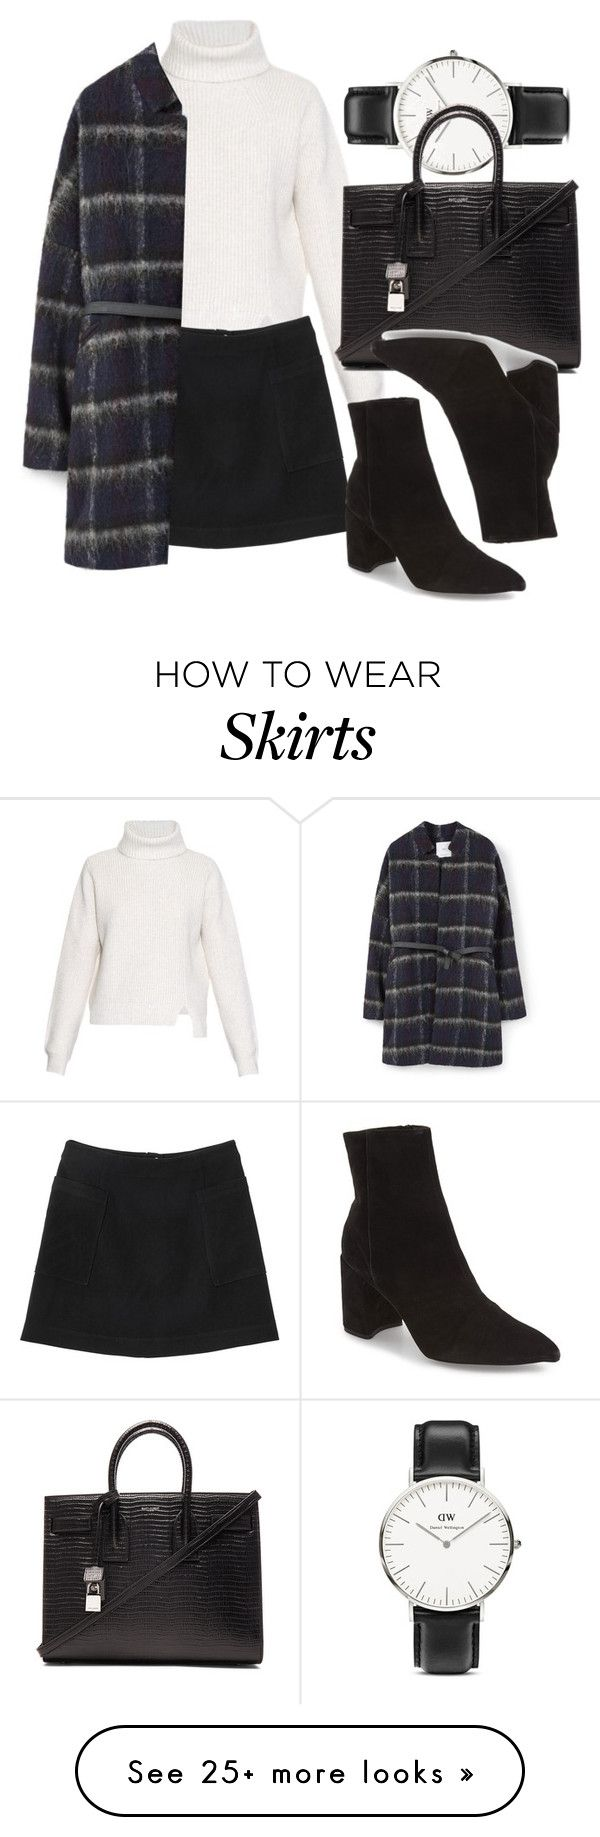 """Untitled #6149"" by laurenmboot on Polyvore featuring Proenza Schouler, Daniel Wellington, Monki, Yves Saint Laurent, MANGO and Topshop"